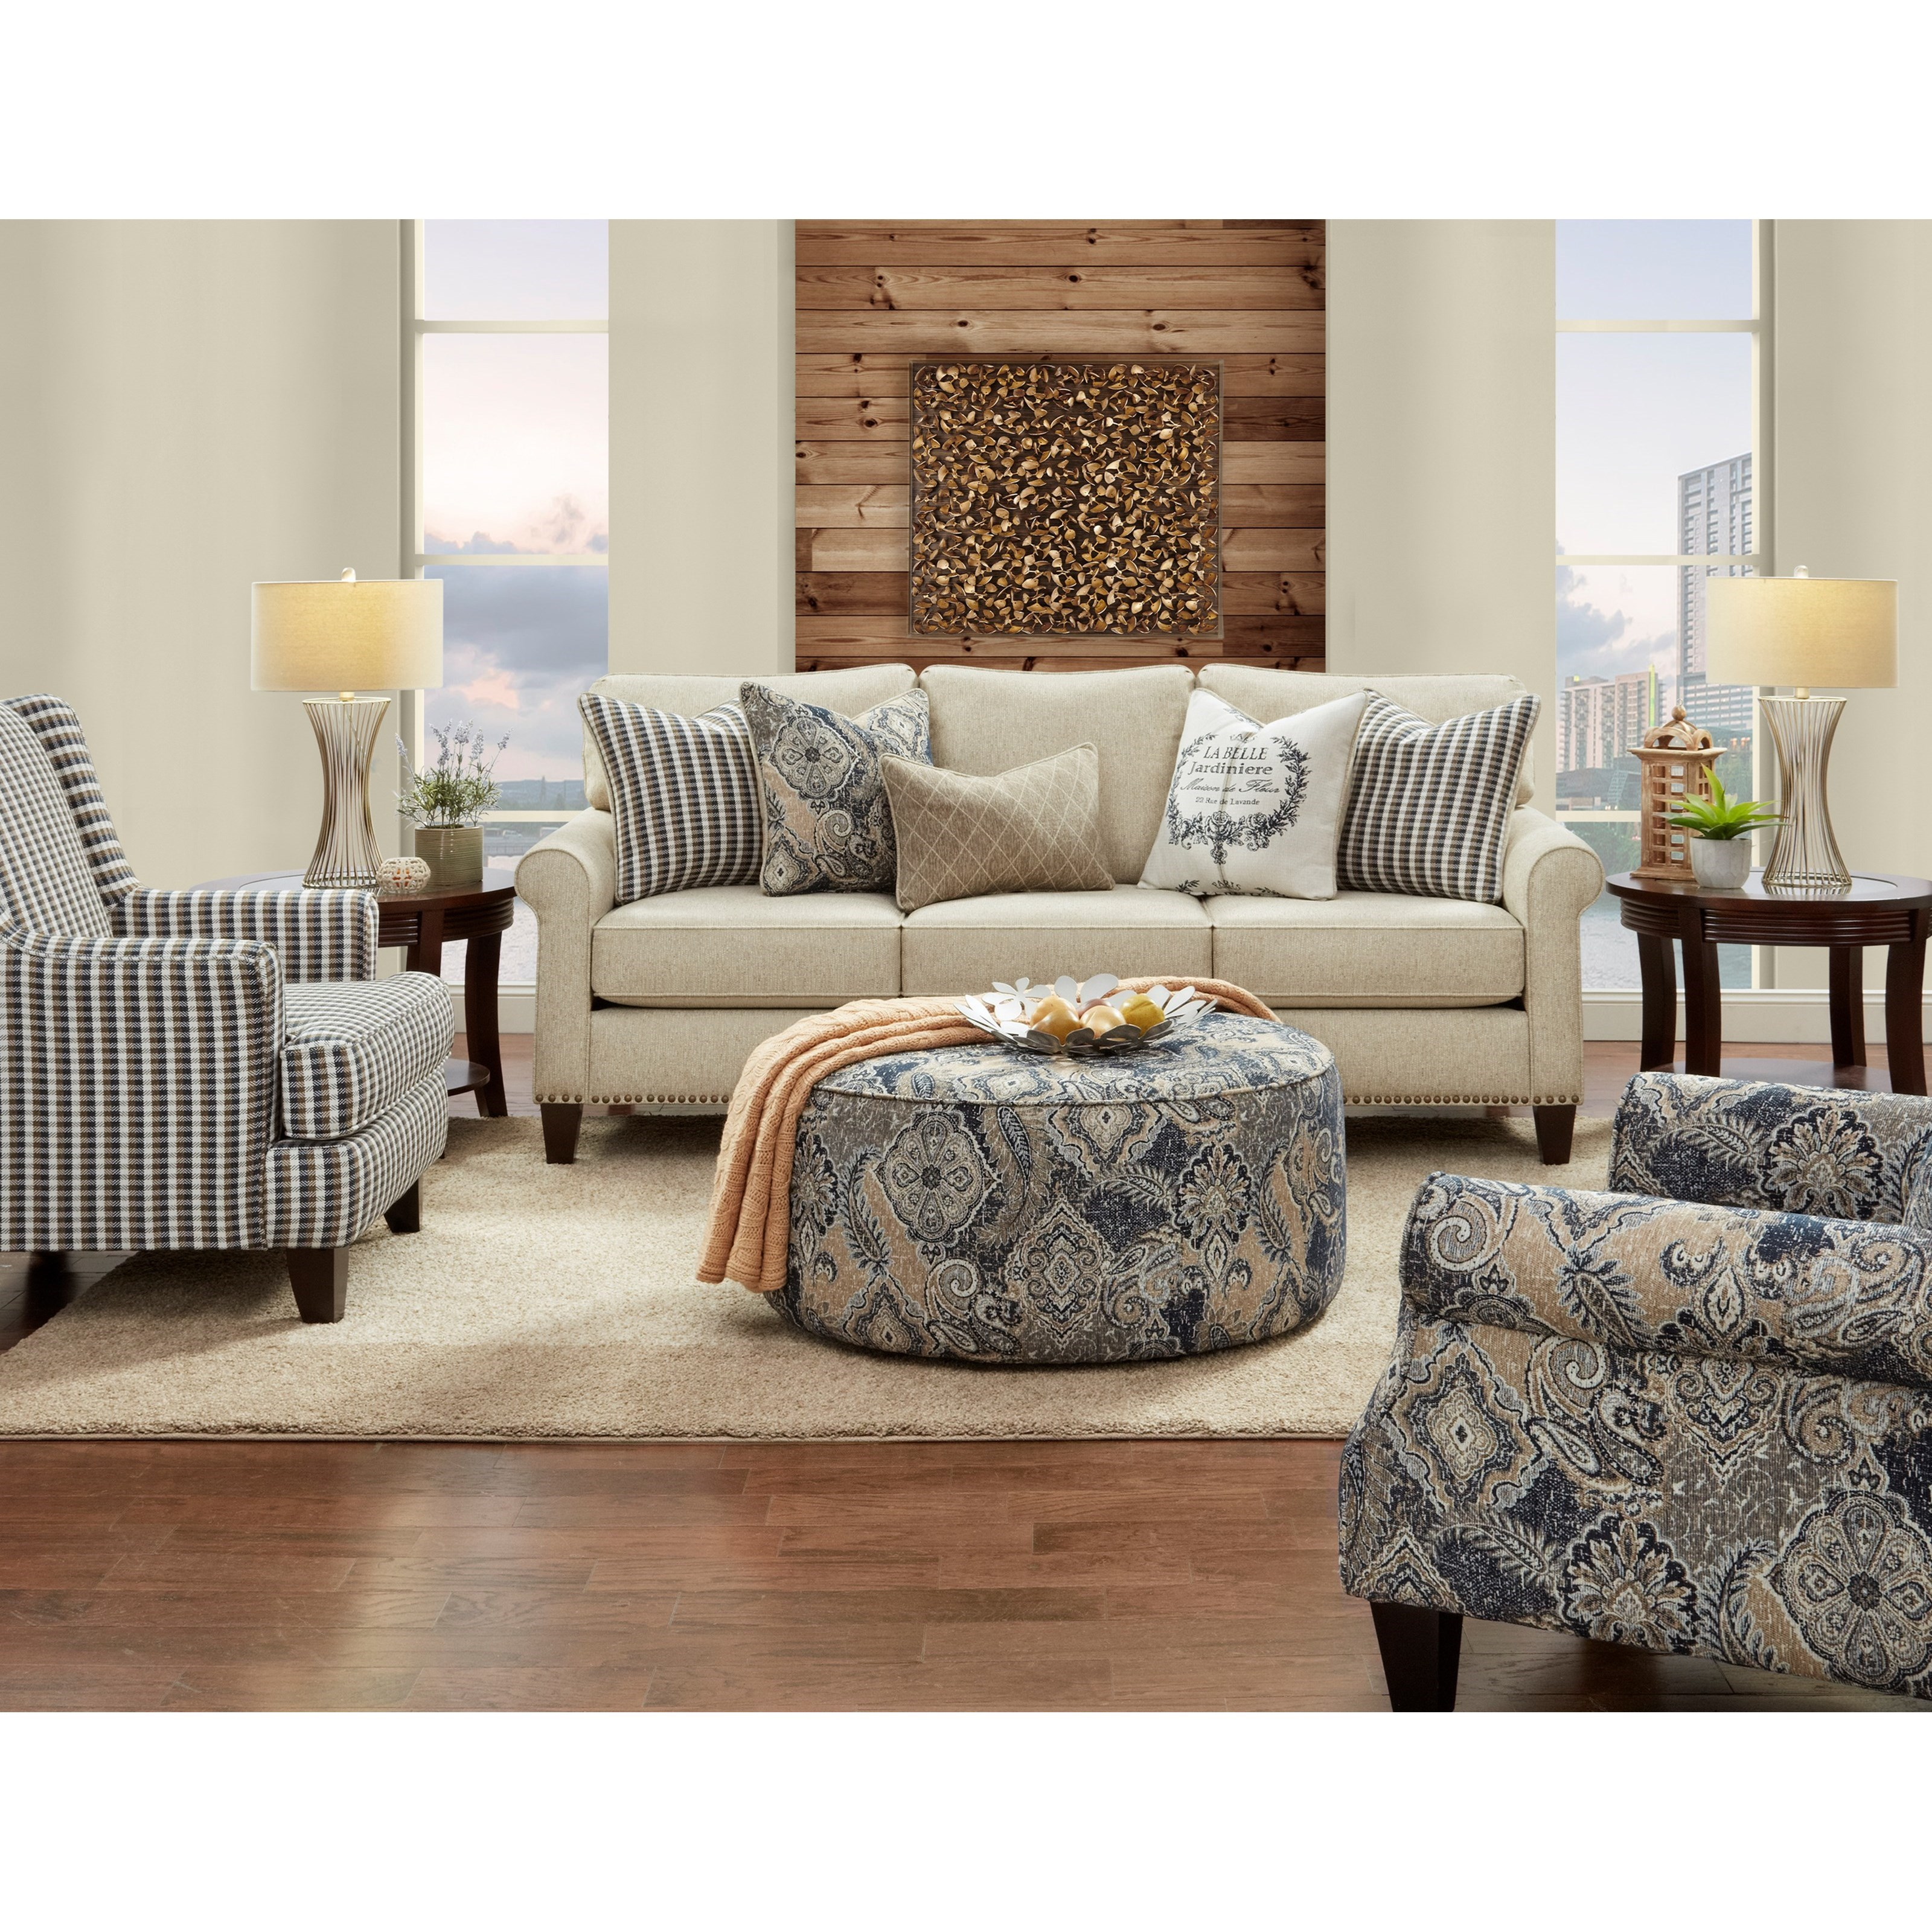 47-00 Living Room Group by Fusion Furniture at Furniture Superstore - Rochester, MN